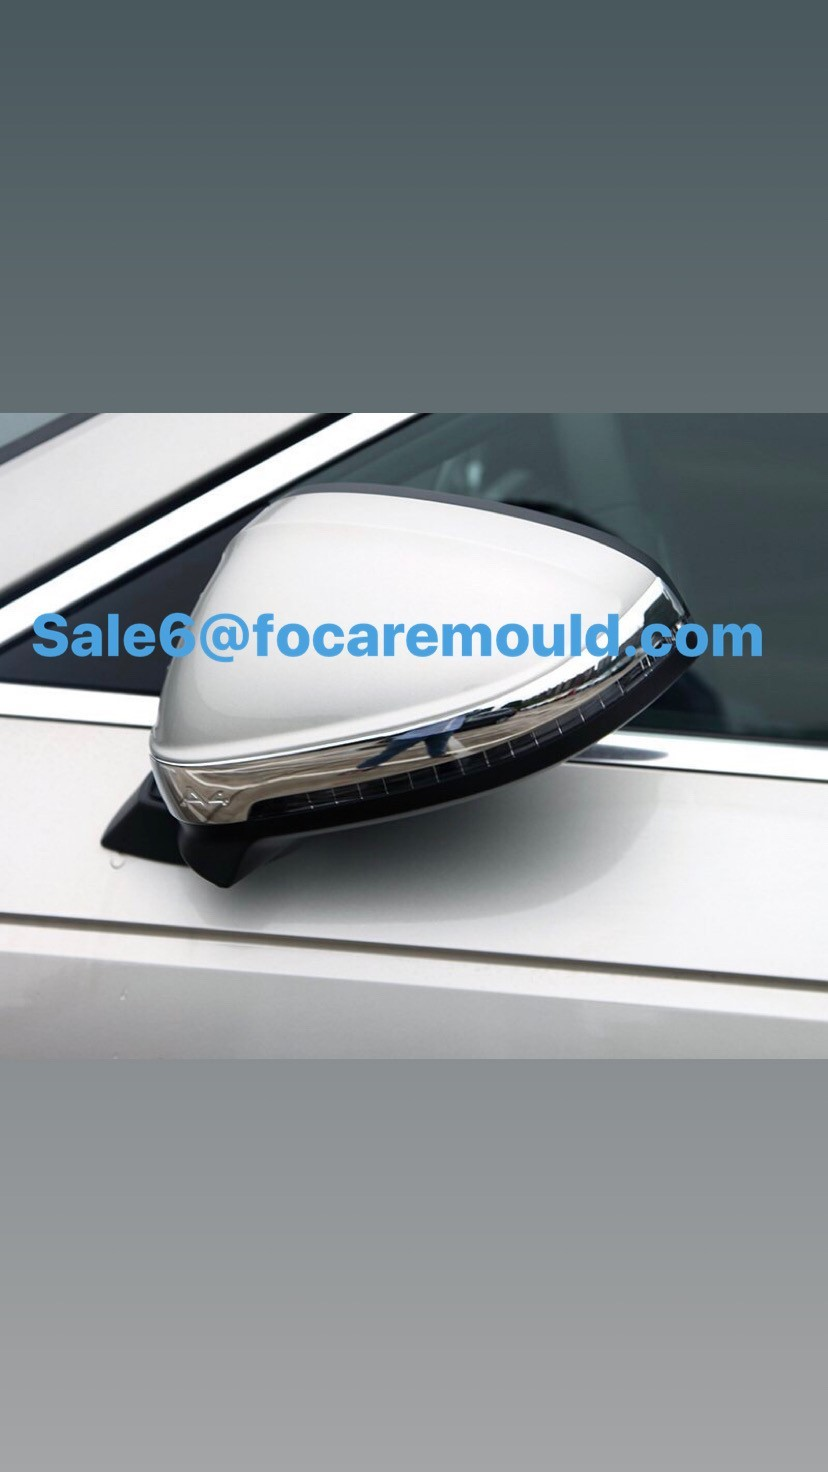 High quality Car Side Mirror Plastic Injection Mould Quotes,China Car Side Mirror Plastic Injection Mould Factory,Car Side Mirror Plastic Injection Mould Purchasing